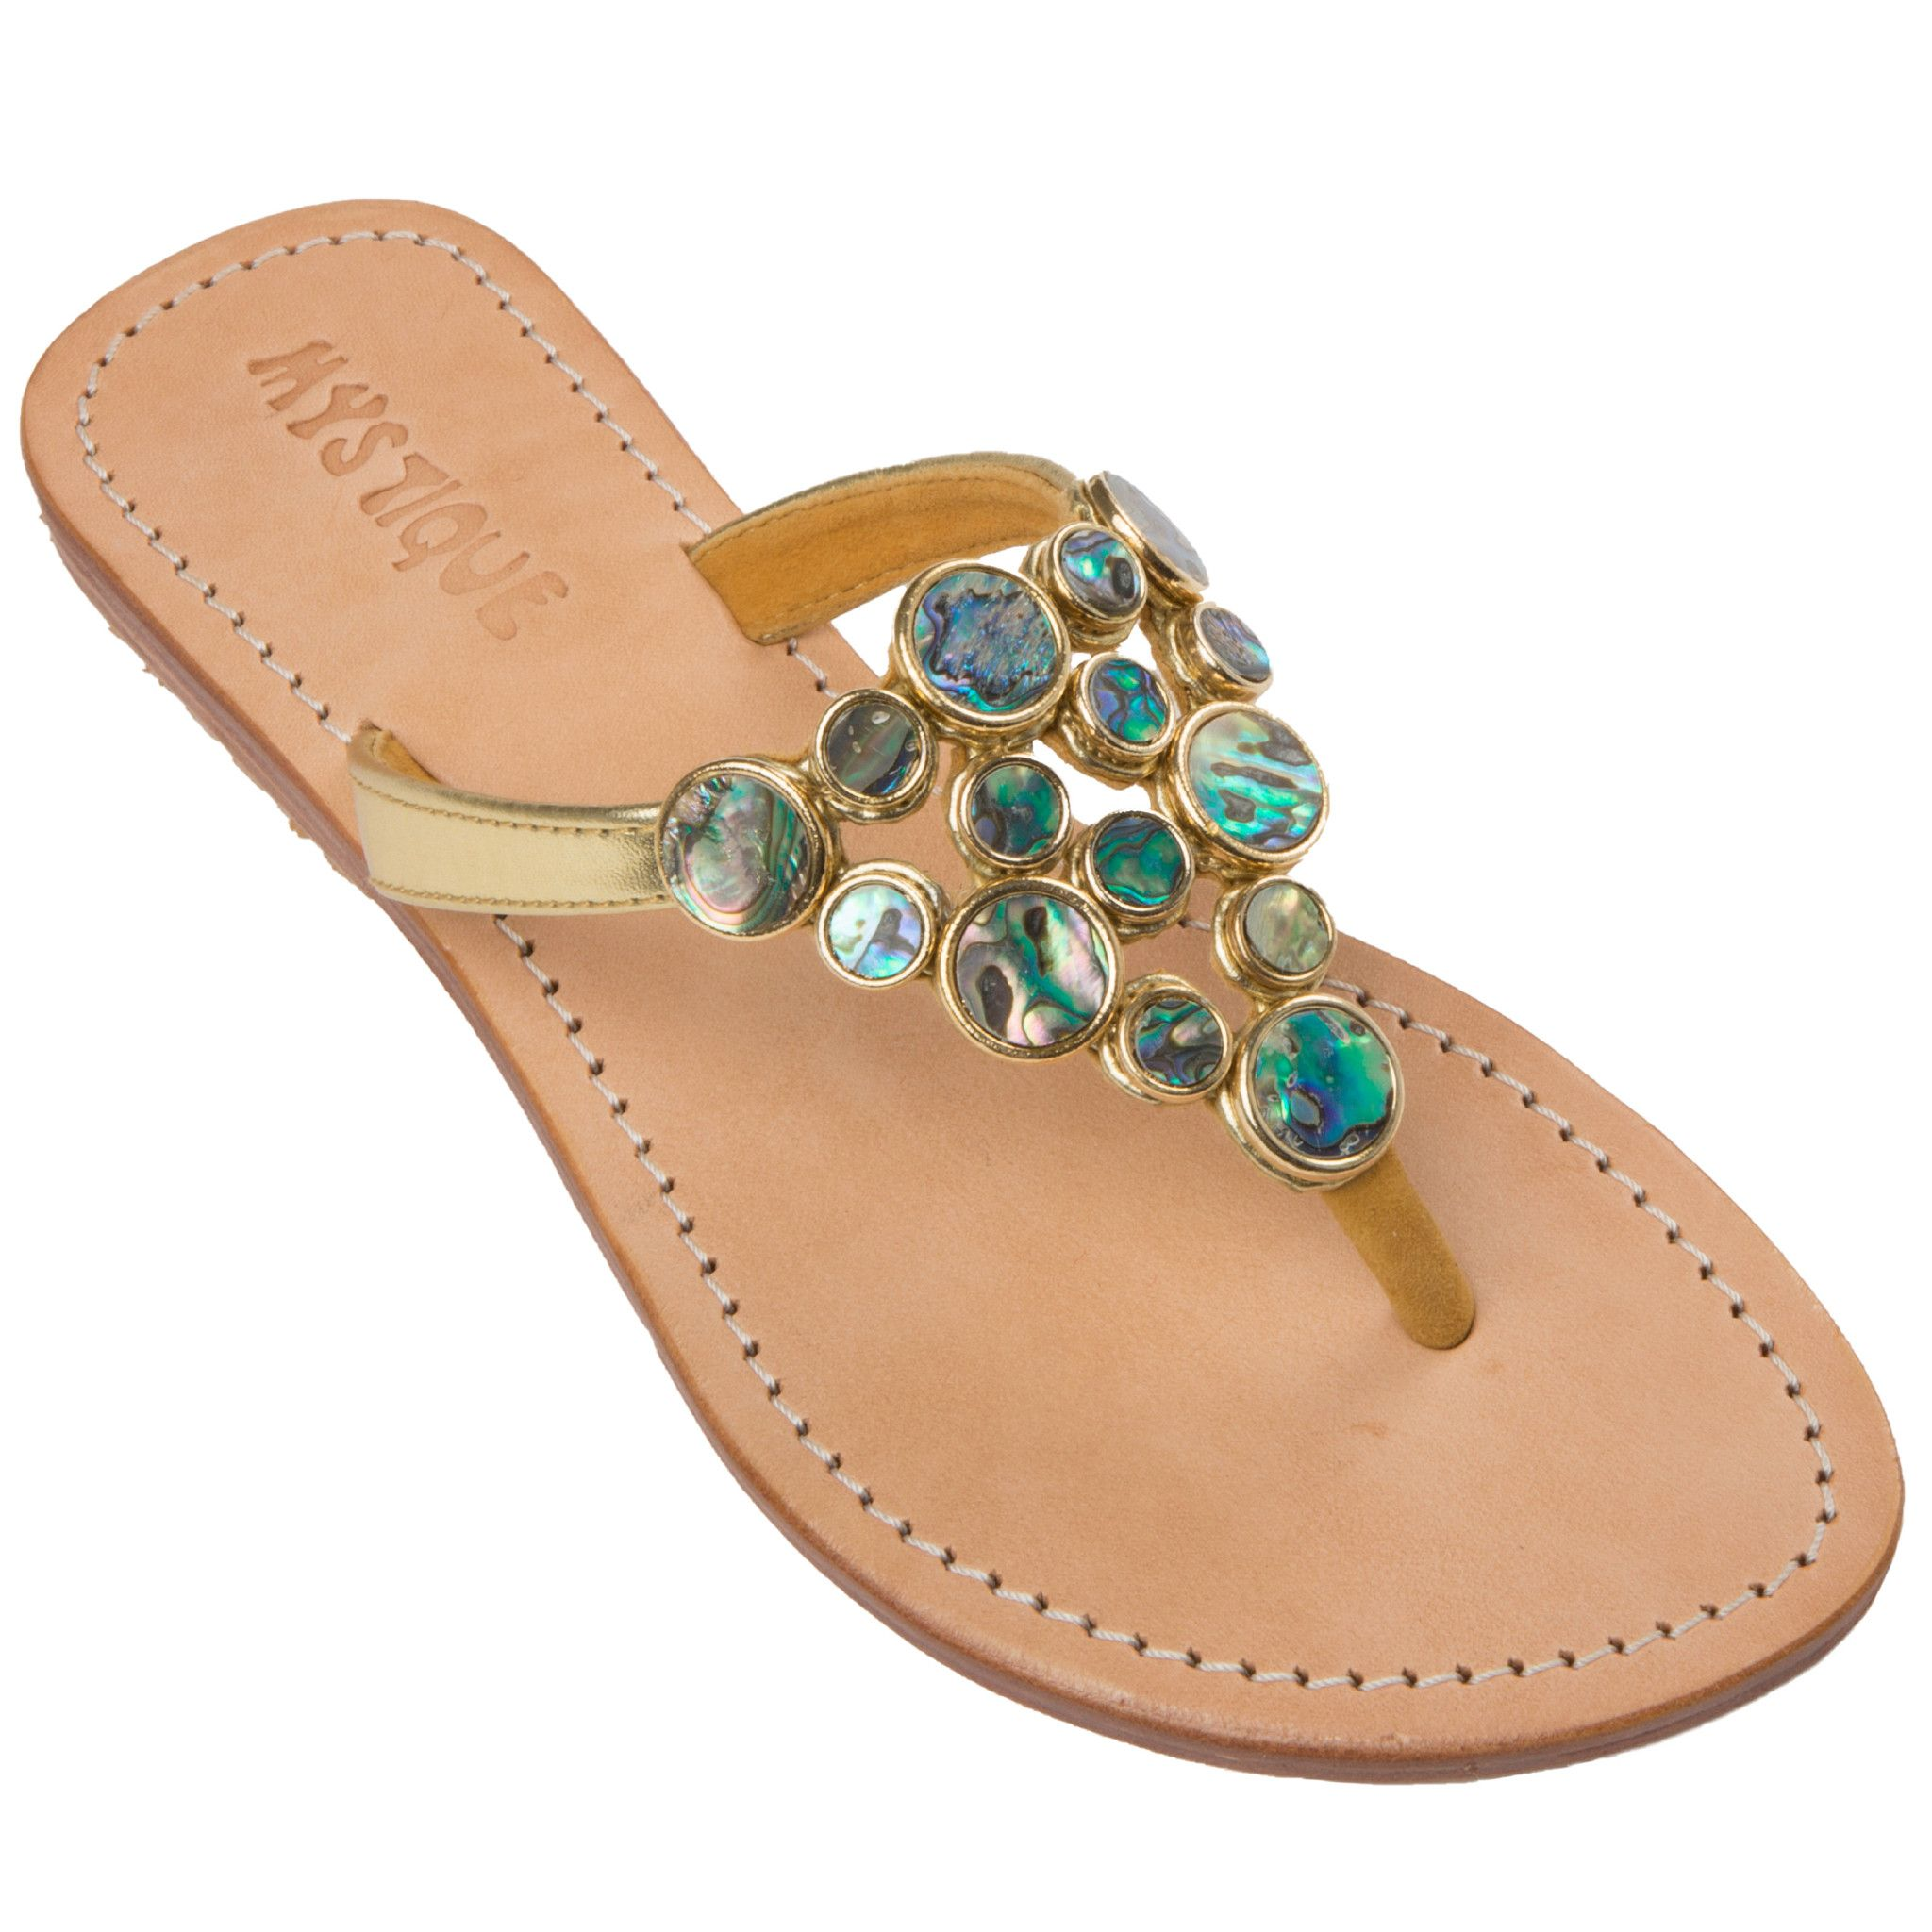 5ff82d739ac1 Crete Leather Sandals Flat